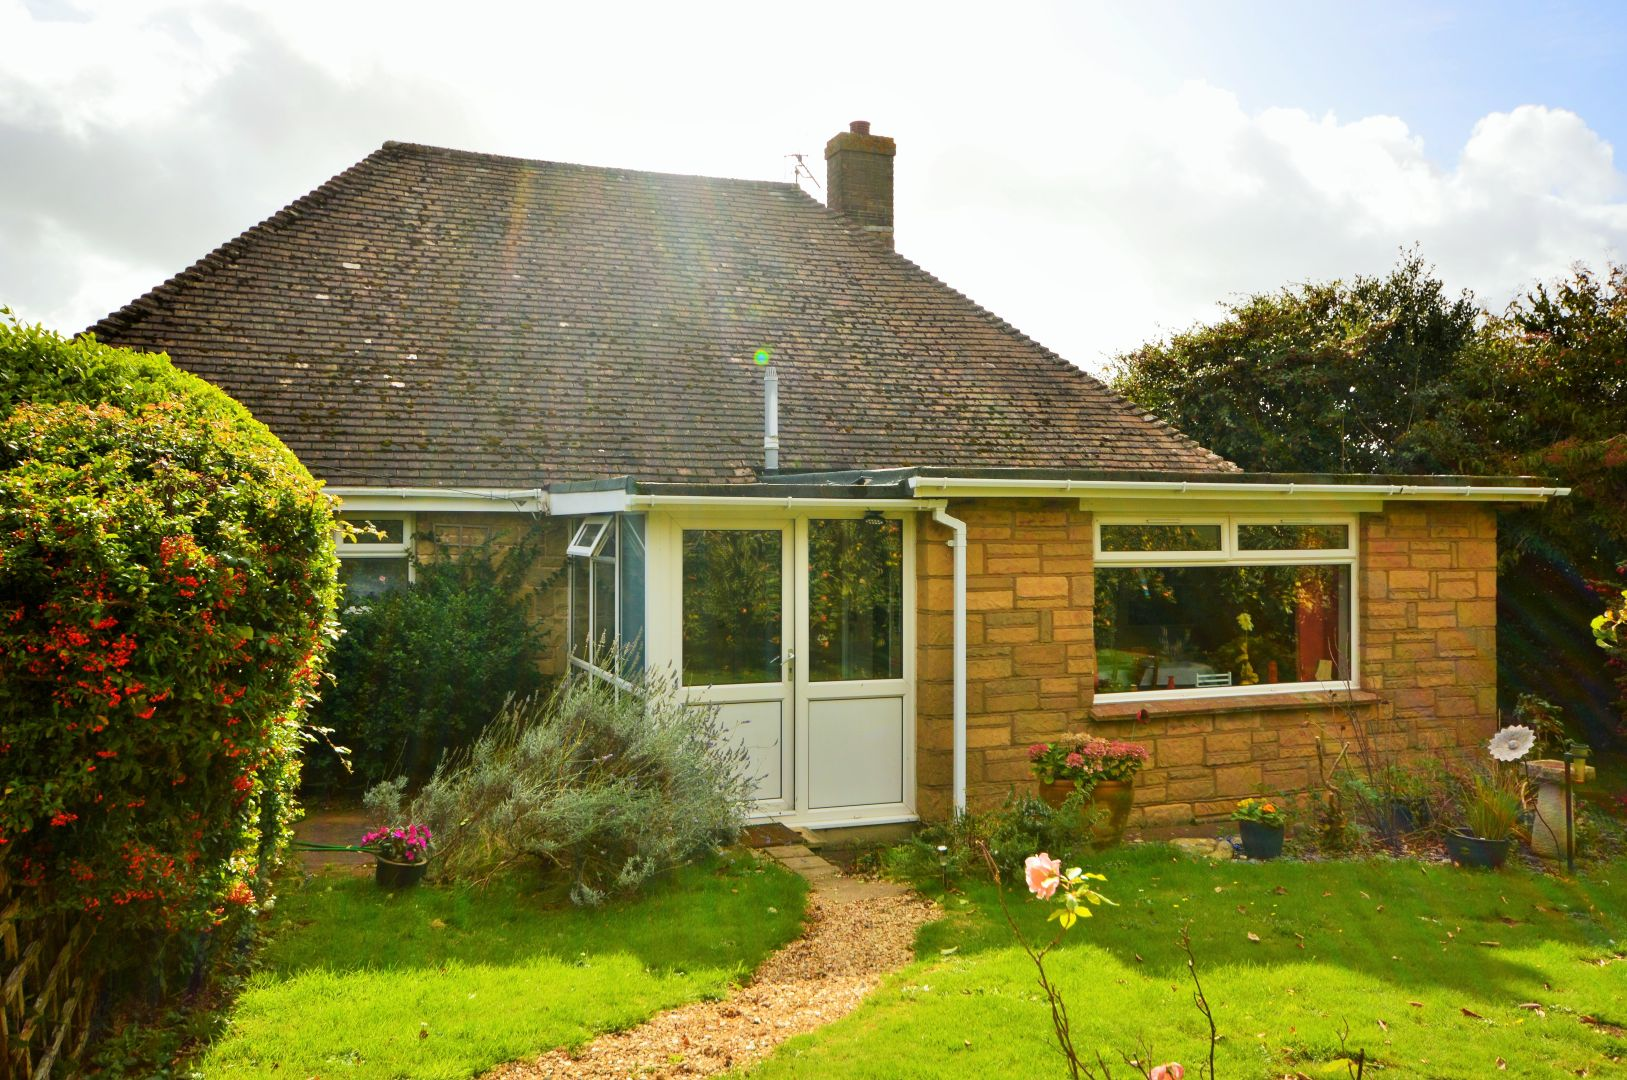 Whitestones Cottage Isle of Wight 3 Bedroom Bungalow